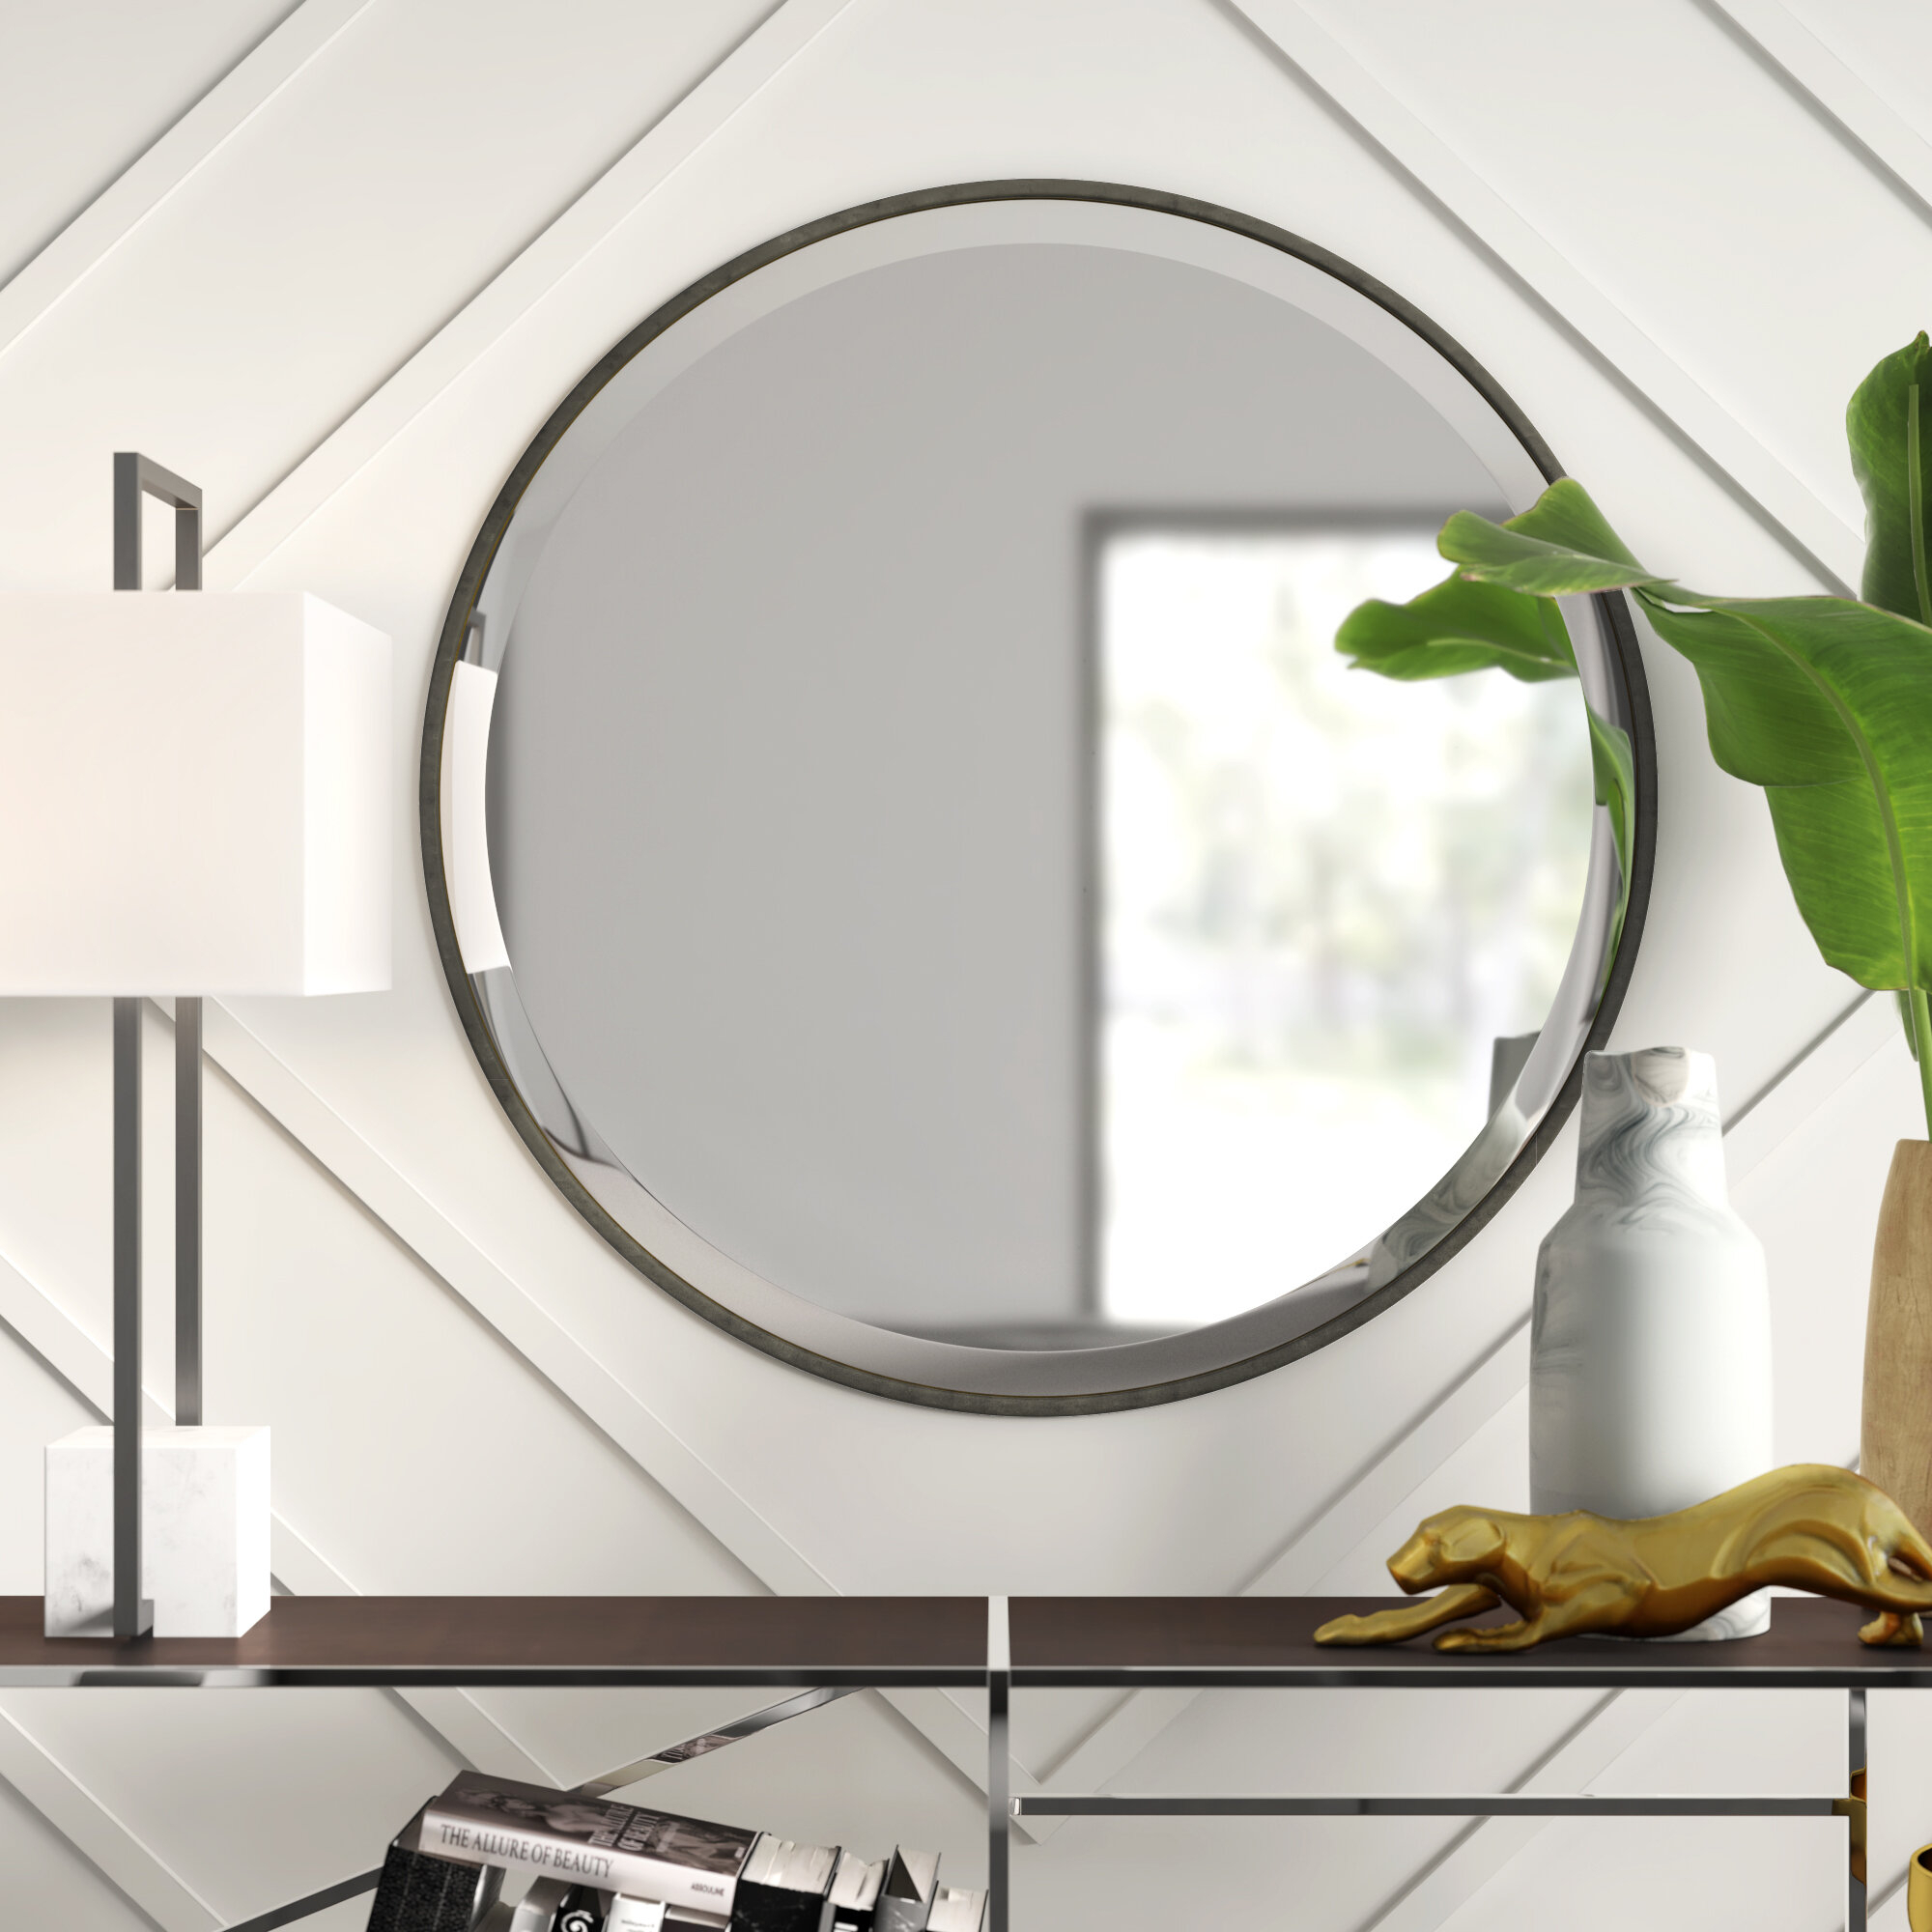 Restoration Hardware Mirror | Wayfair Within Guidinha Modern & Contemporary Accent Mirrors (View 25 of 30)